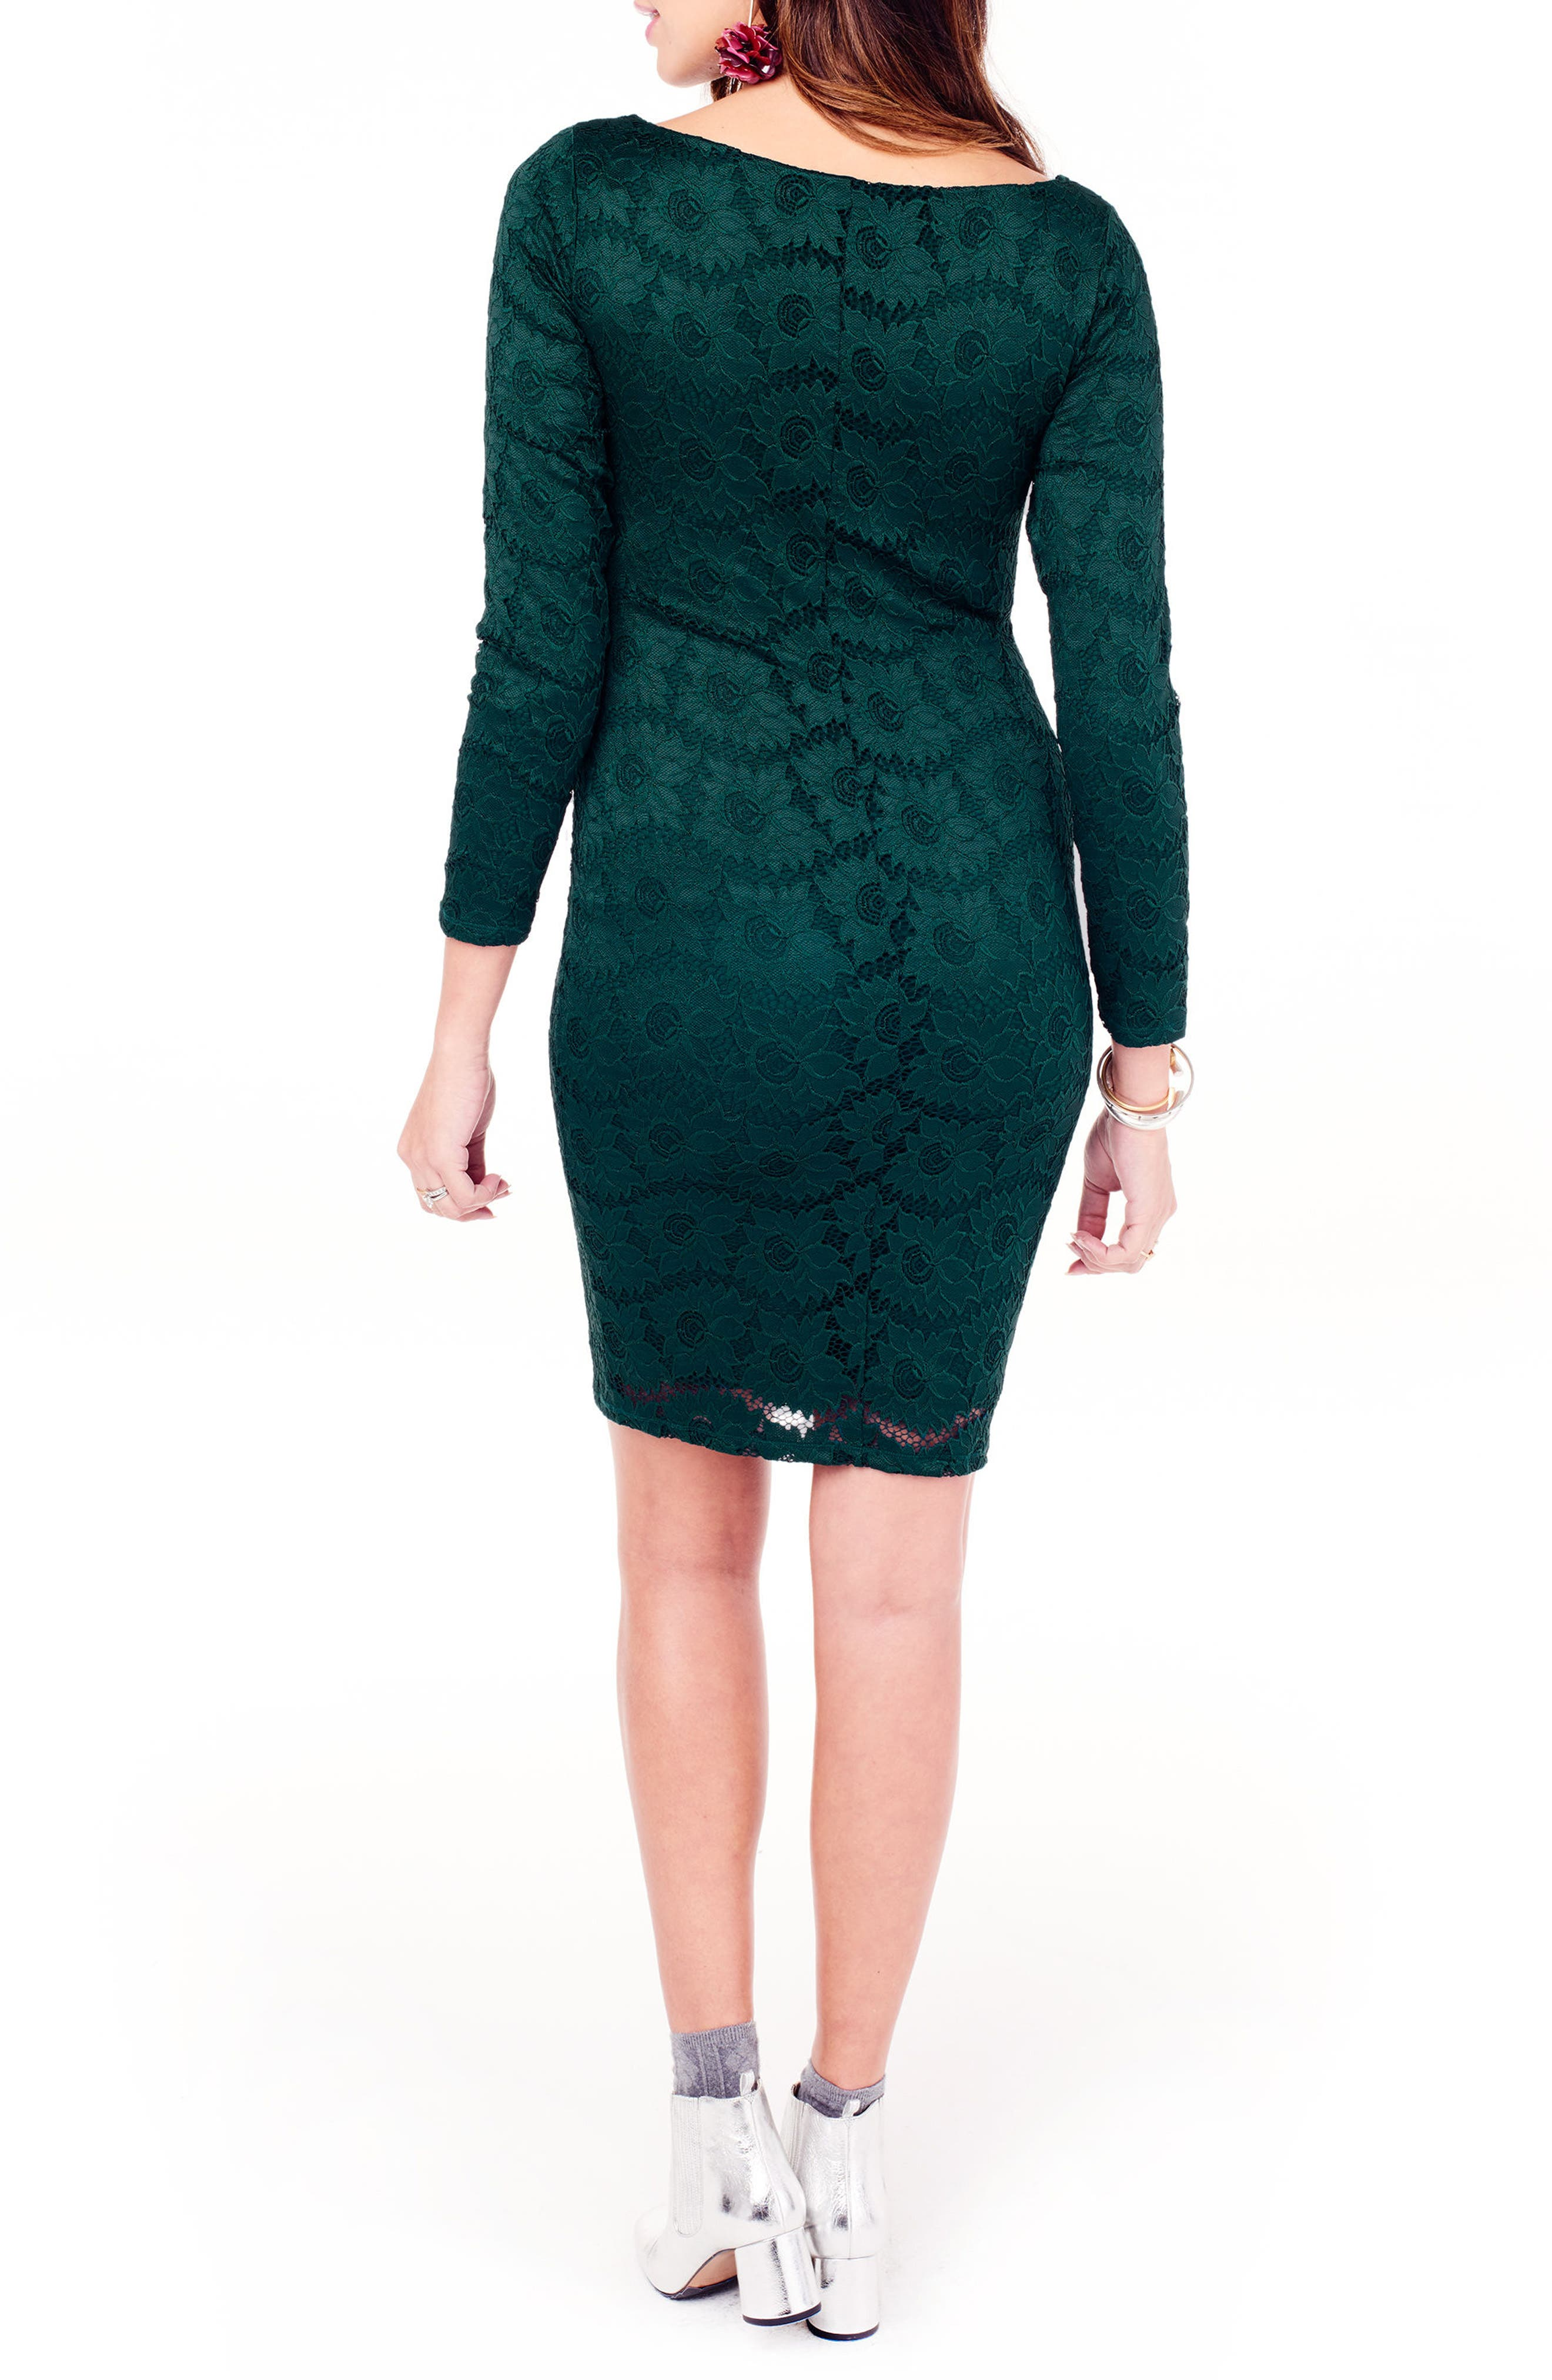 Womens dresses maternity clothing nordstrom ombrellifo Image collections